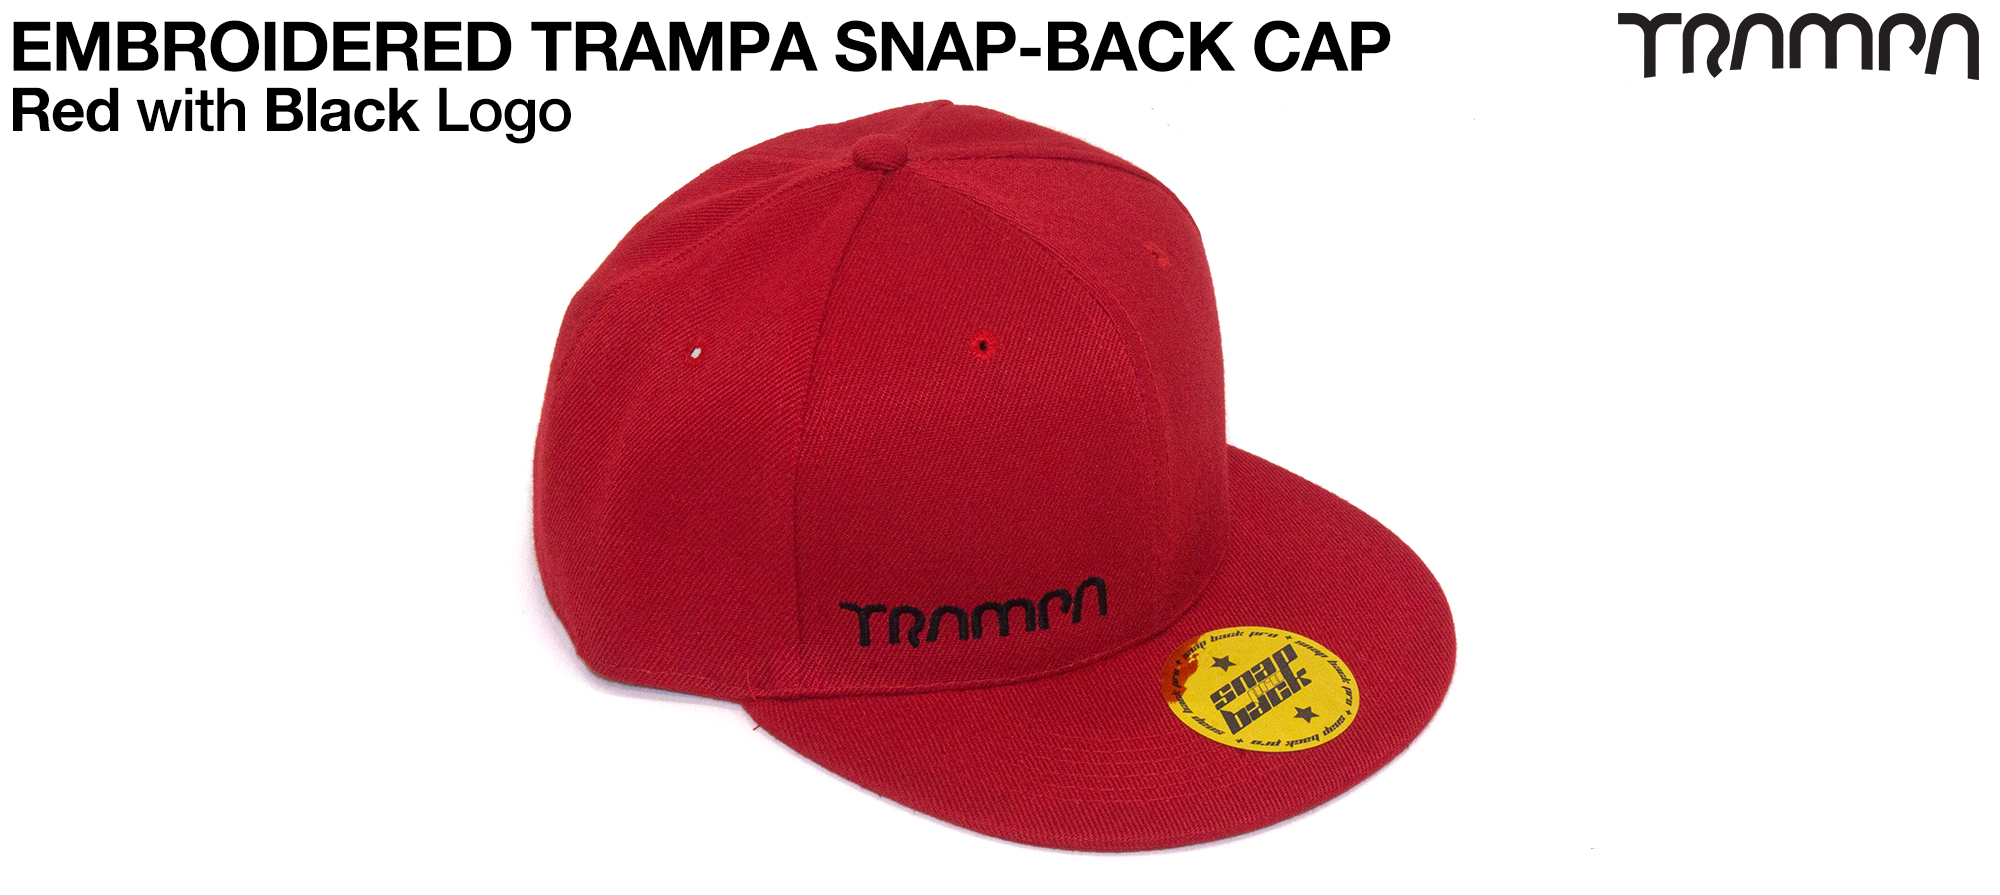 RED SNAPBACK Cap with BLACK logo embroidered